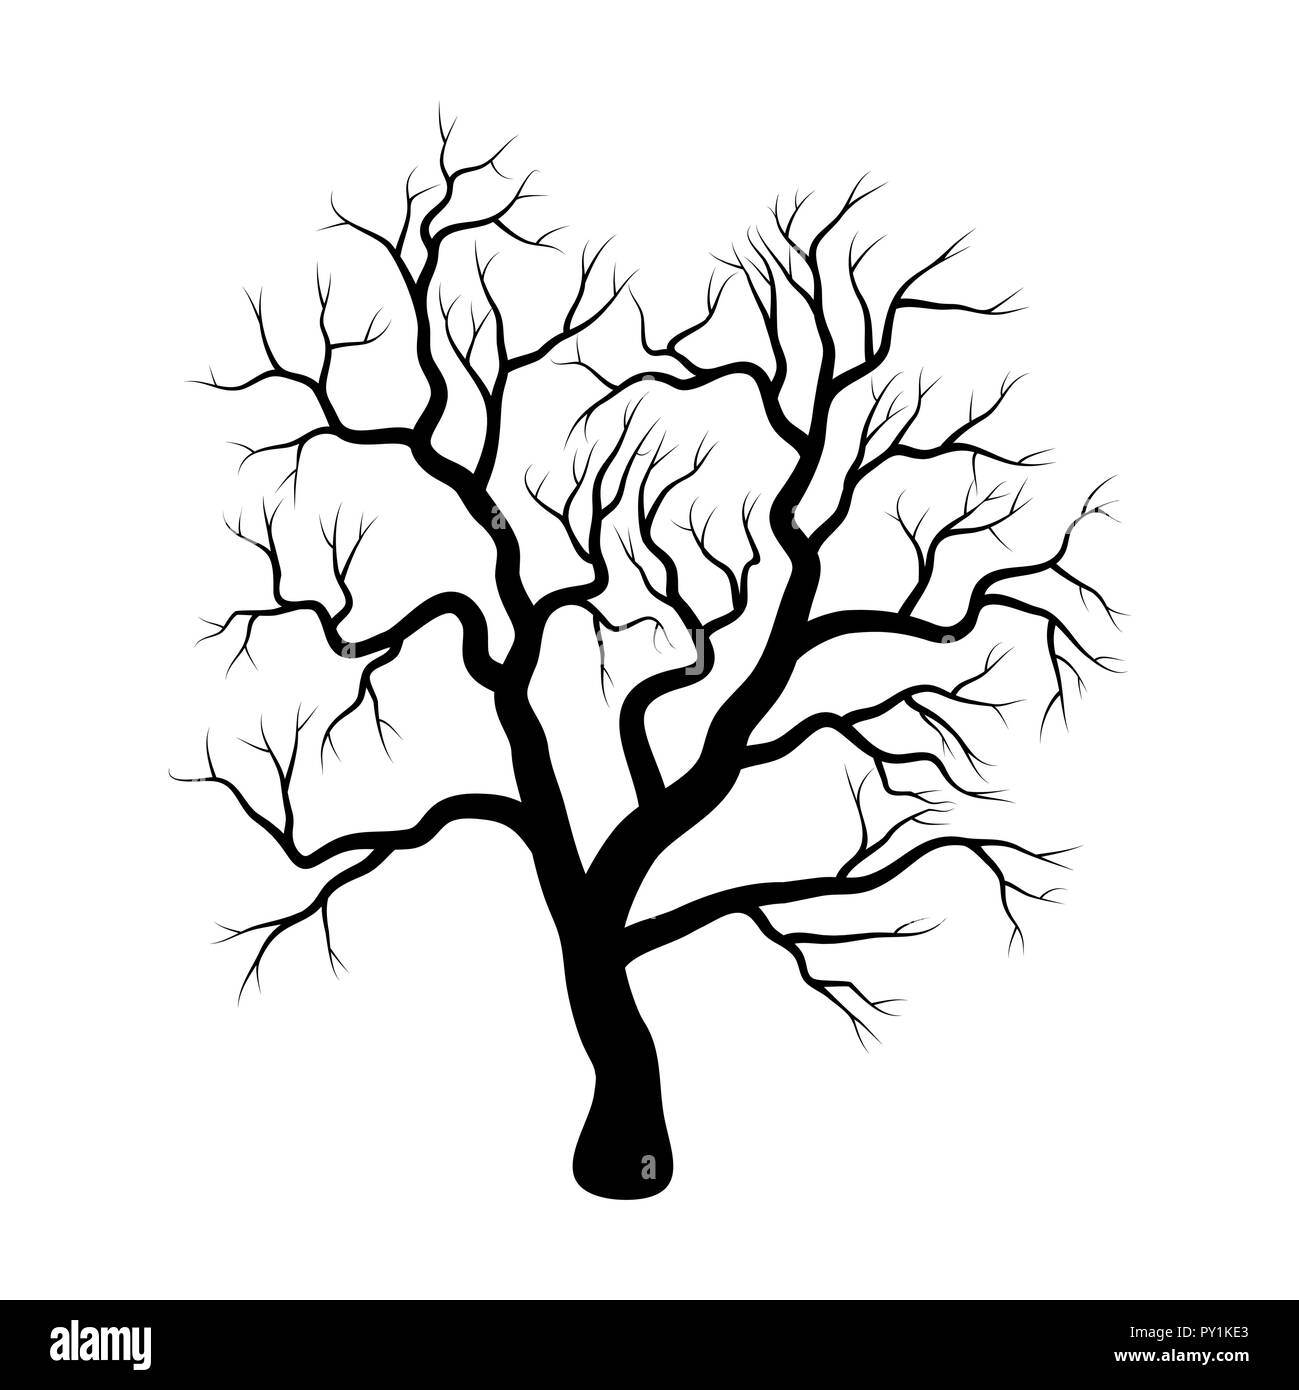 Bare Tree Clipart High Resolution Stock Photography And Images Alamy There are gorgeous winter art projects, fun snowman crafts, adorable winter animals, snowflake crafts and more! https www alamy com bare tree winter design isolated on white background image223157371 html